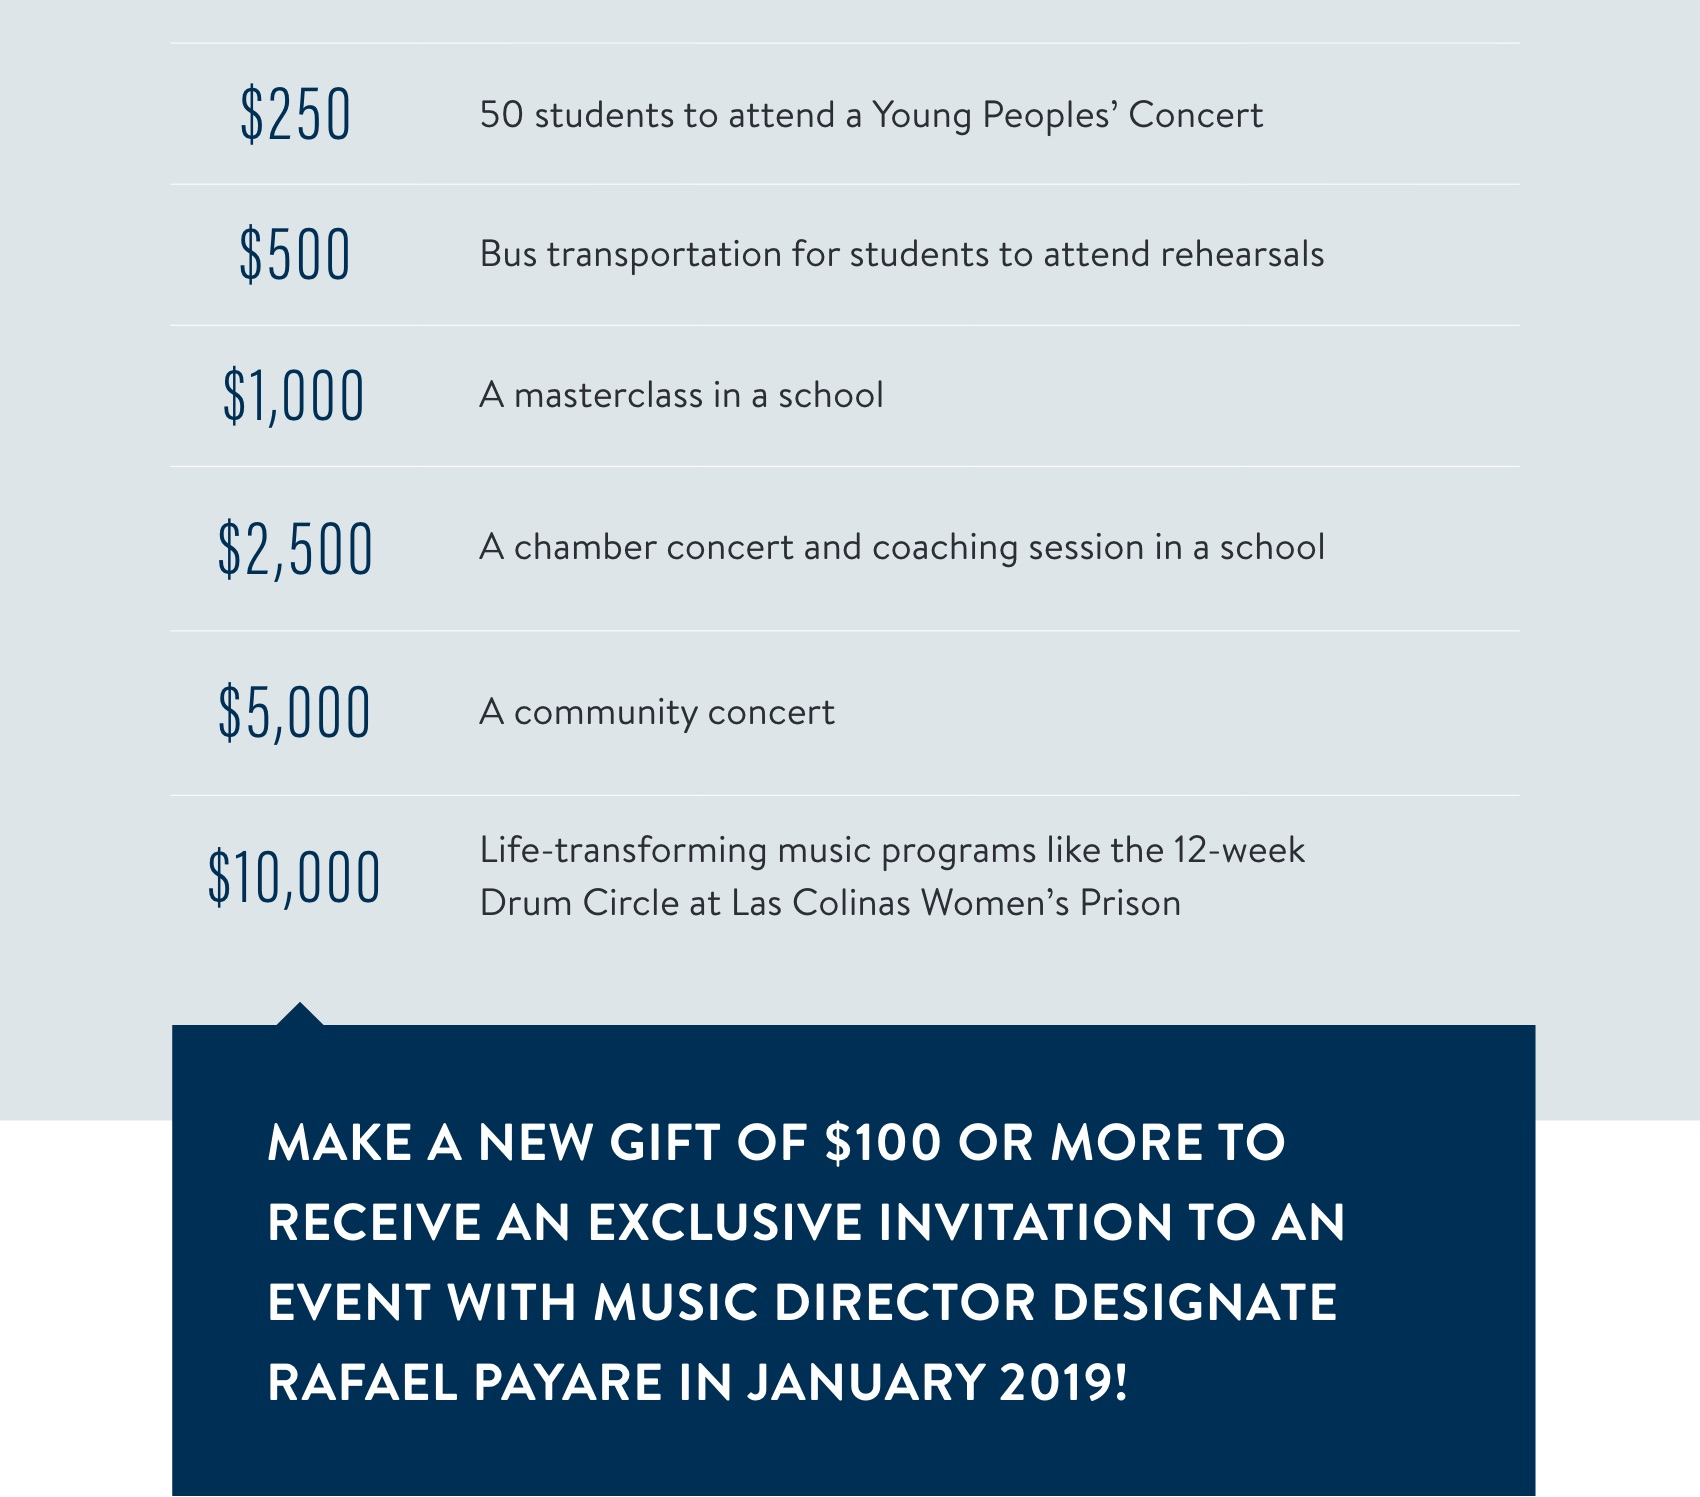 For a breakdown on giving impact, please call 619.615.3901. Make a new gift of $100 or more to receive an exclusive invitation to an event with music director designate Rafael Payare in January 2019!